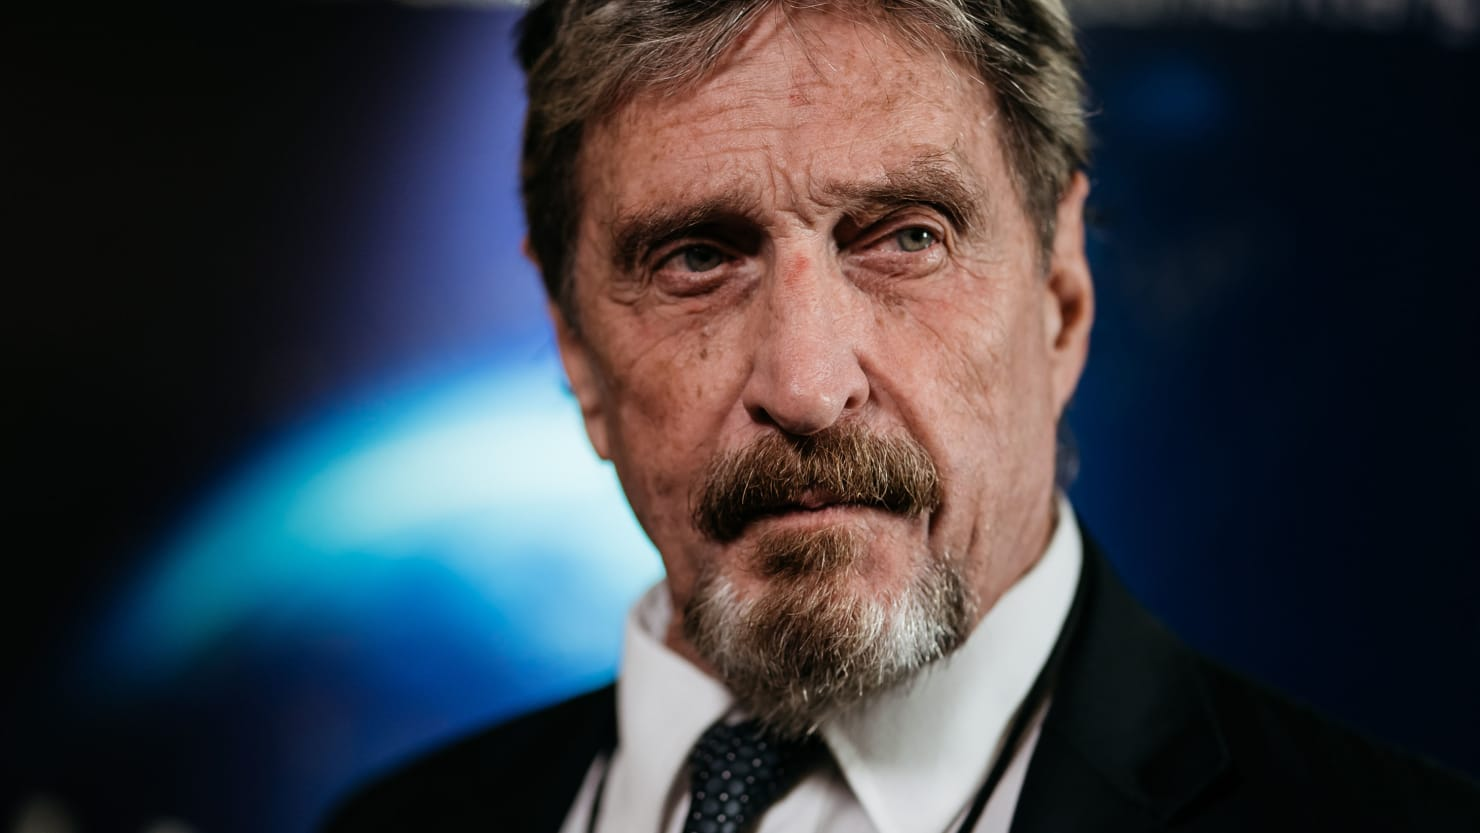 Eccentric Antivirus Mogul John McAfee Accused of Making Hundreds of hundreds in Illegal Crypto Schemes